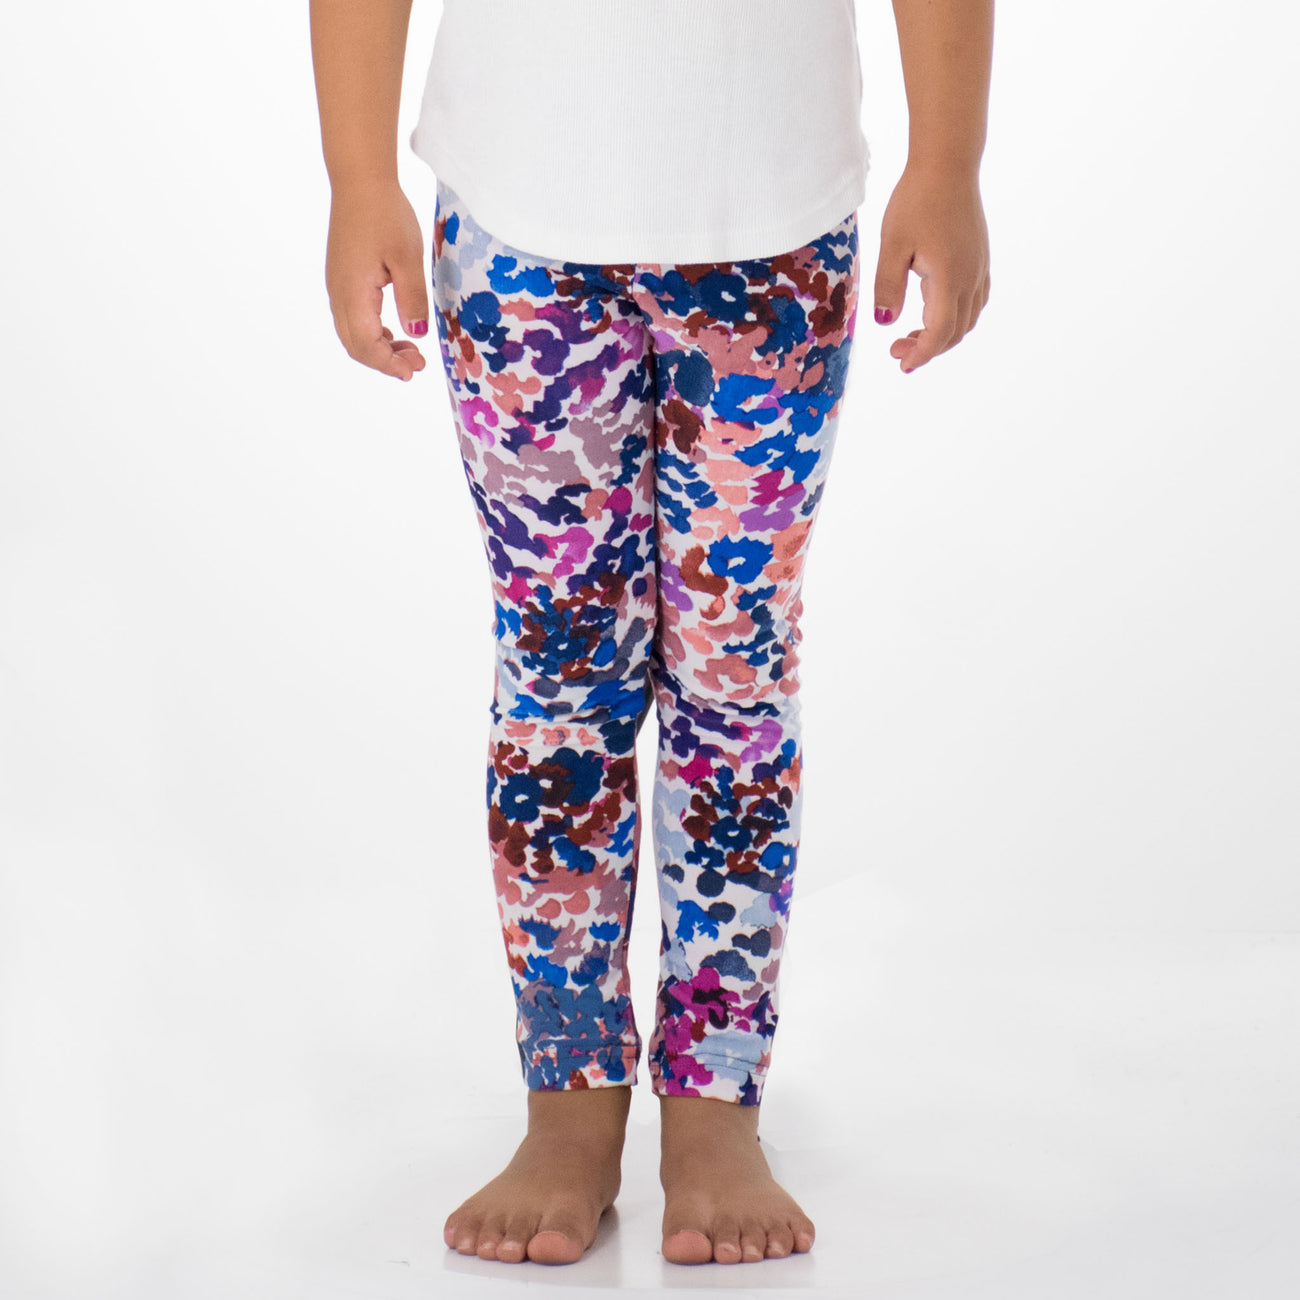 POPPY GIRLS LEGGINGS